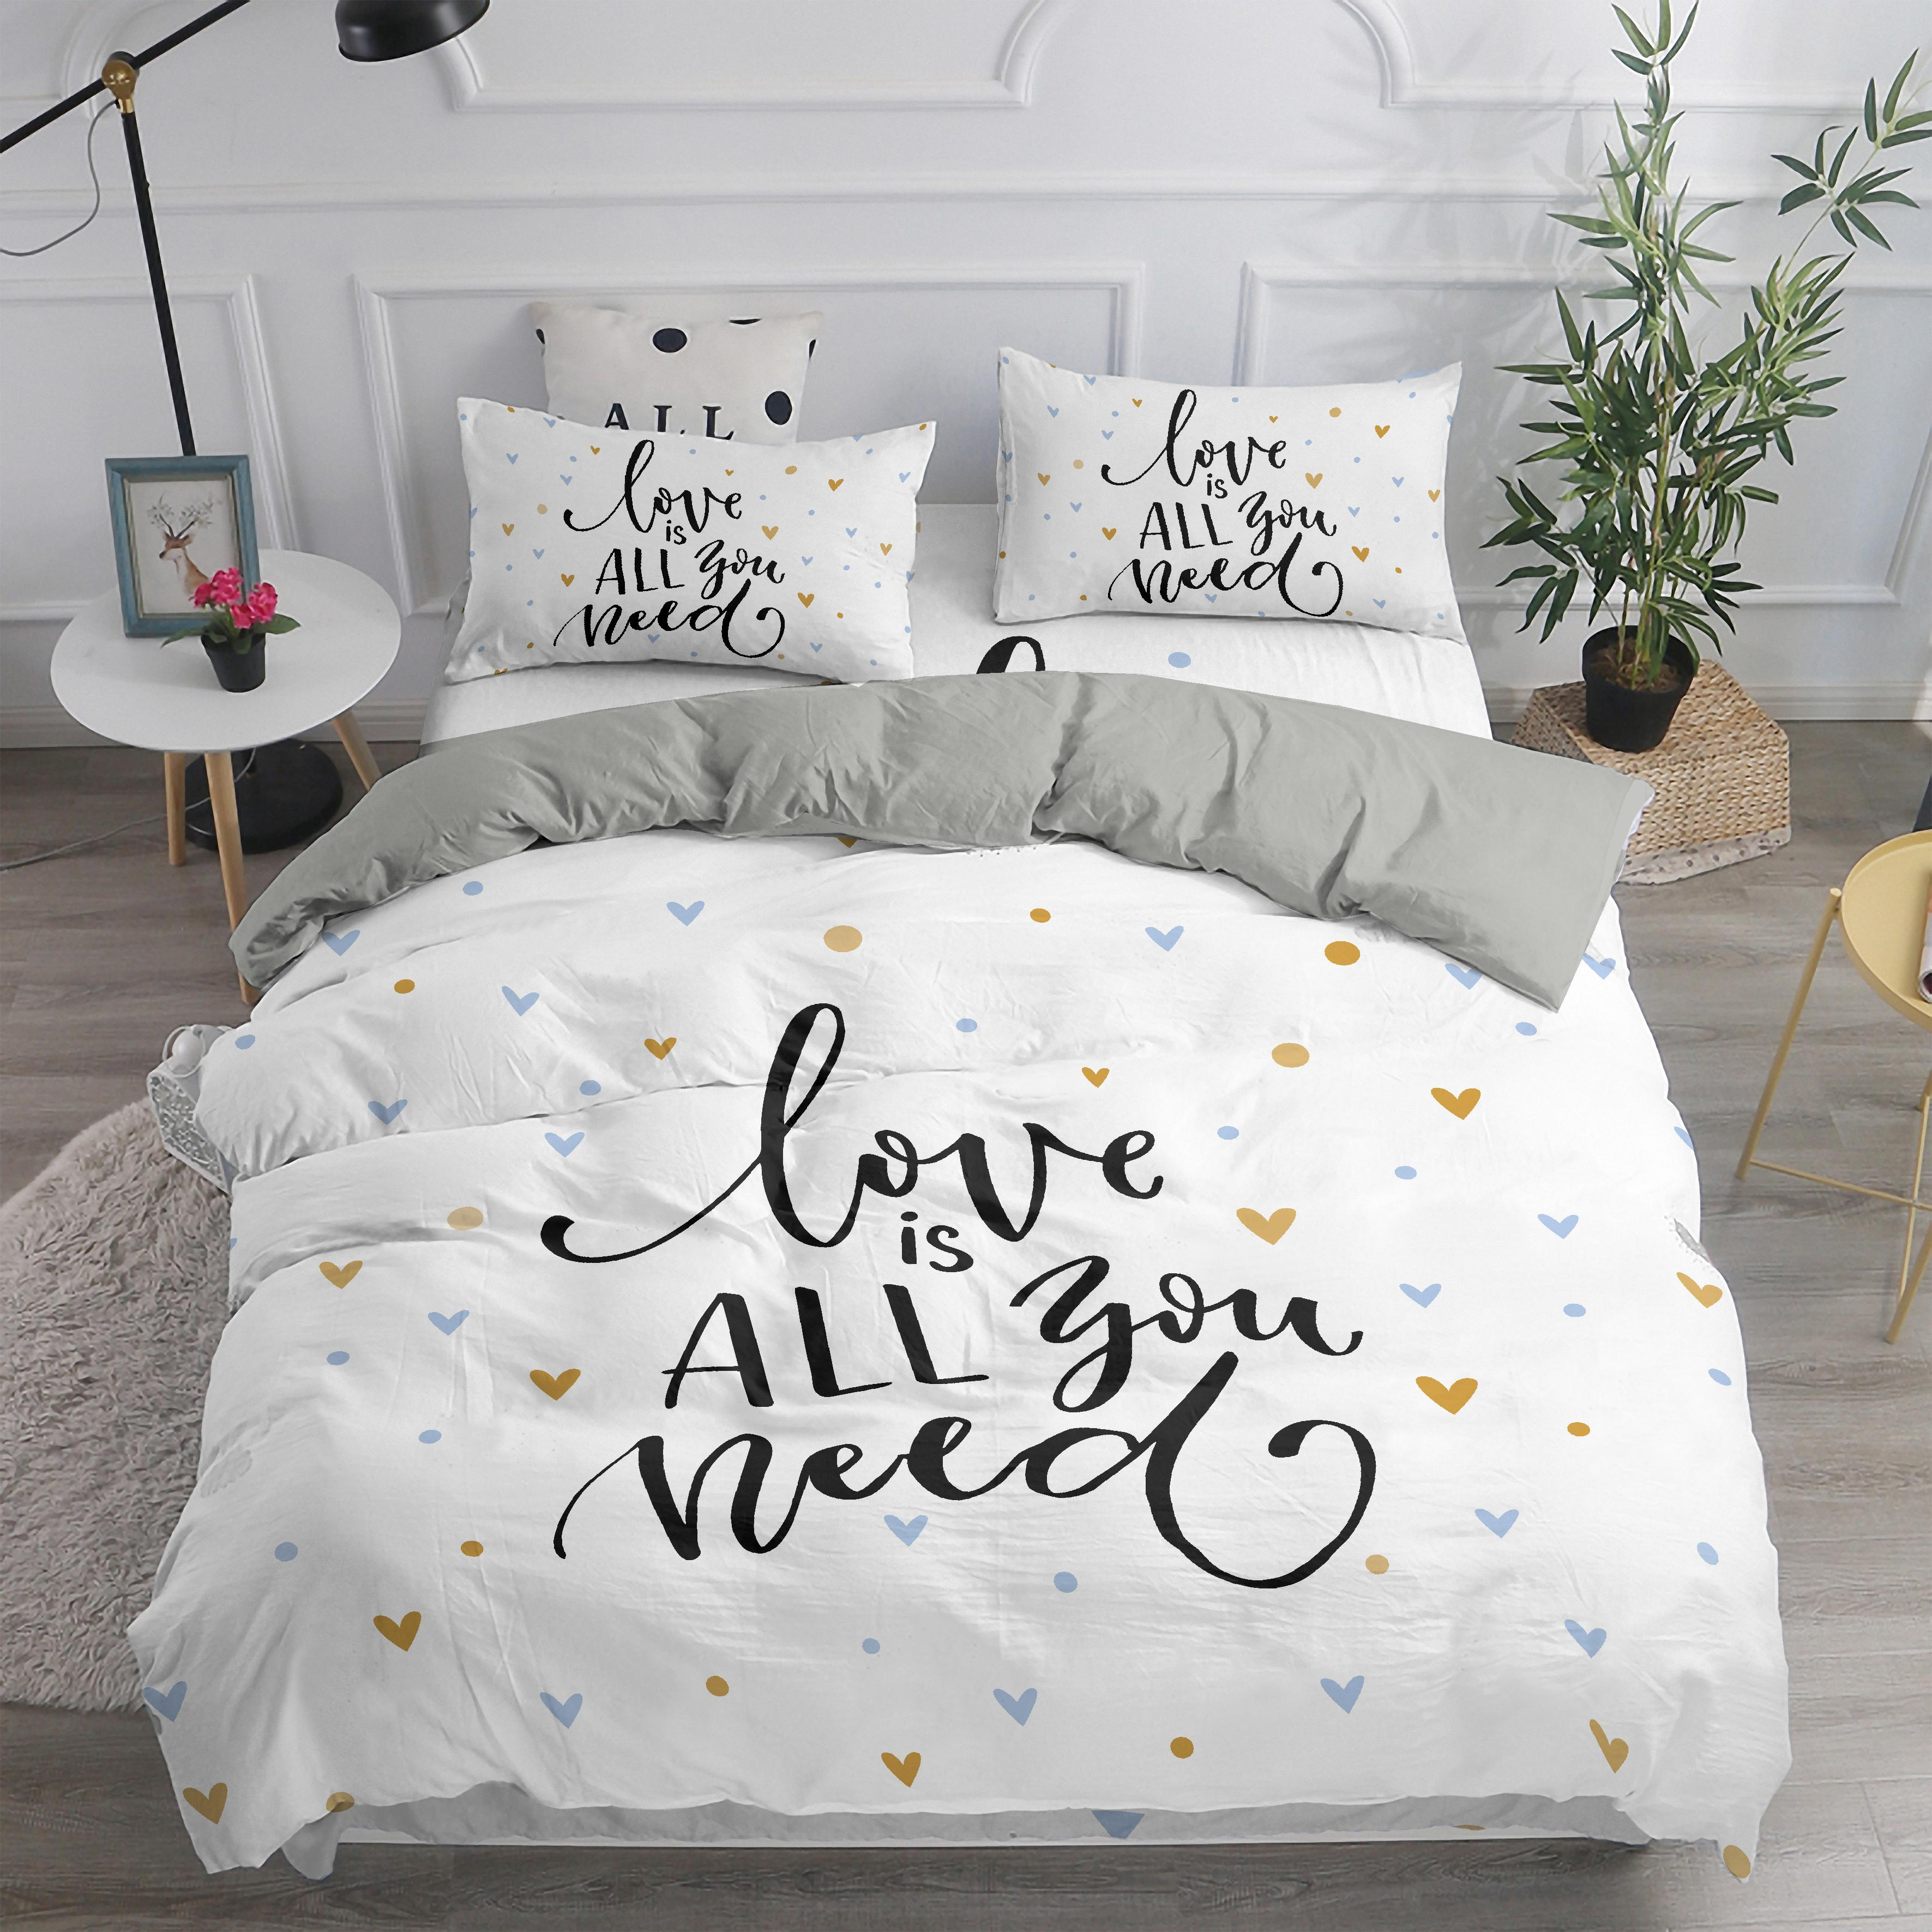 Pillowcase Bedding-Sets Duvet-Cover 3D Heart-Printed Girl Kid ZEIMON English-Letter-Printing